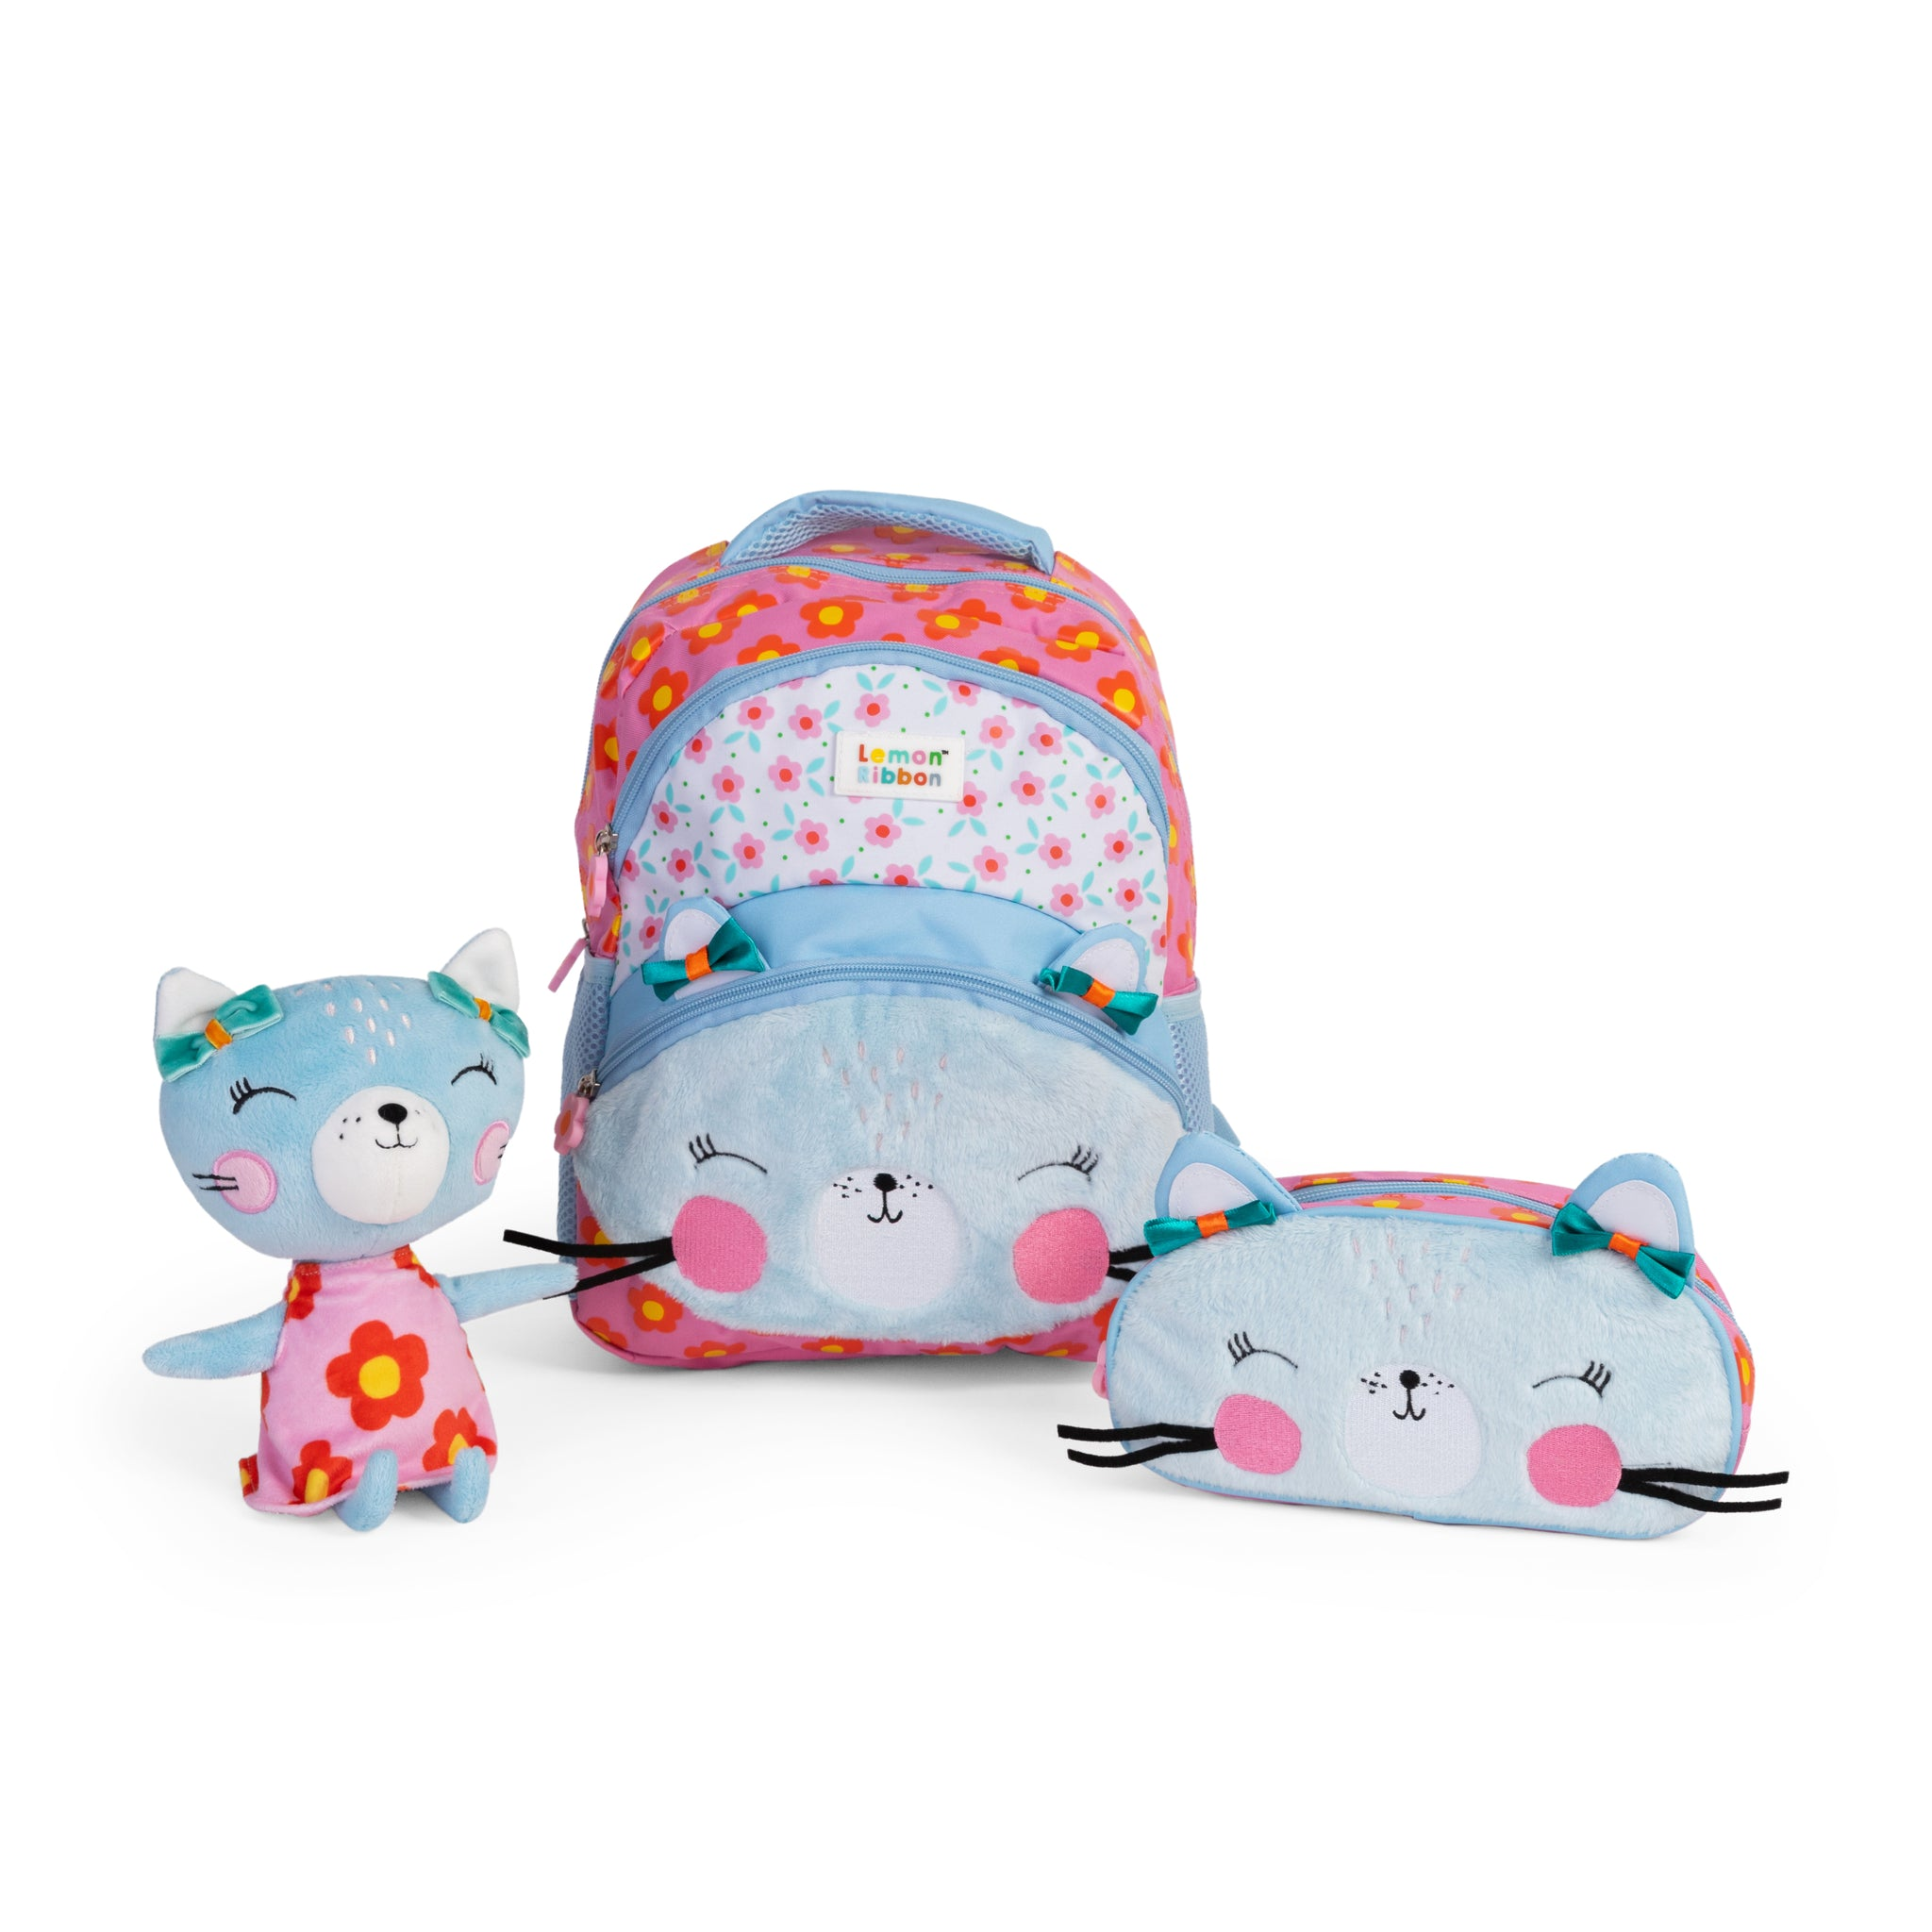 Buy Lemon Ribbon Kids' Cat Gift Set, Bundle includes Character backpack, pencil case and soft toy at shop.lemonribbon.com